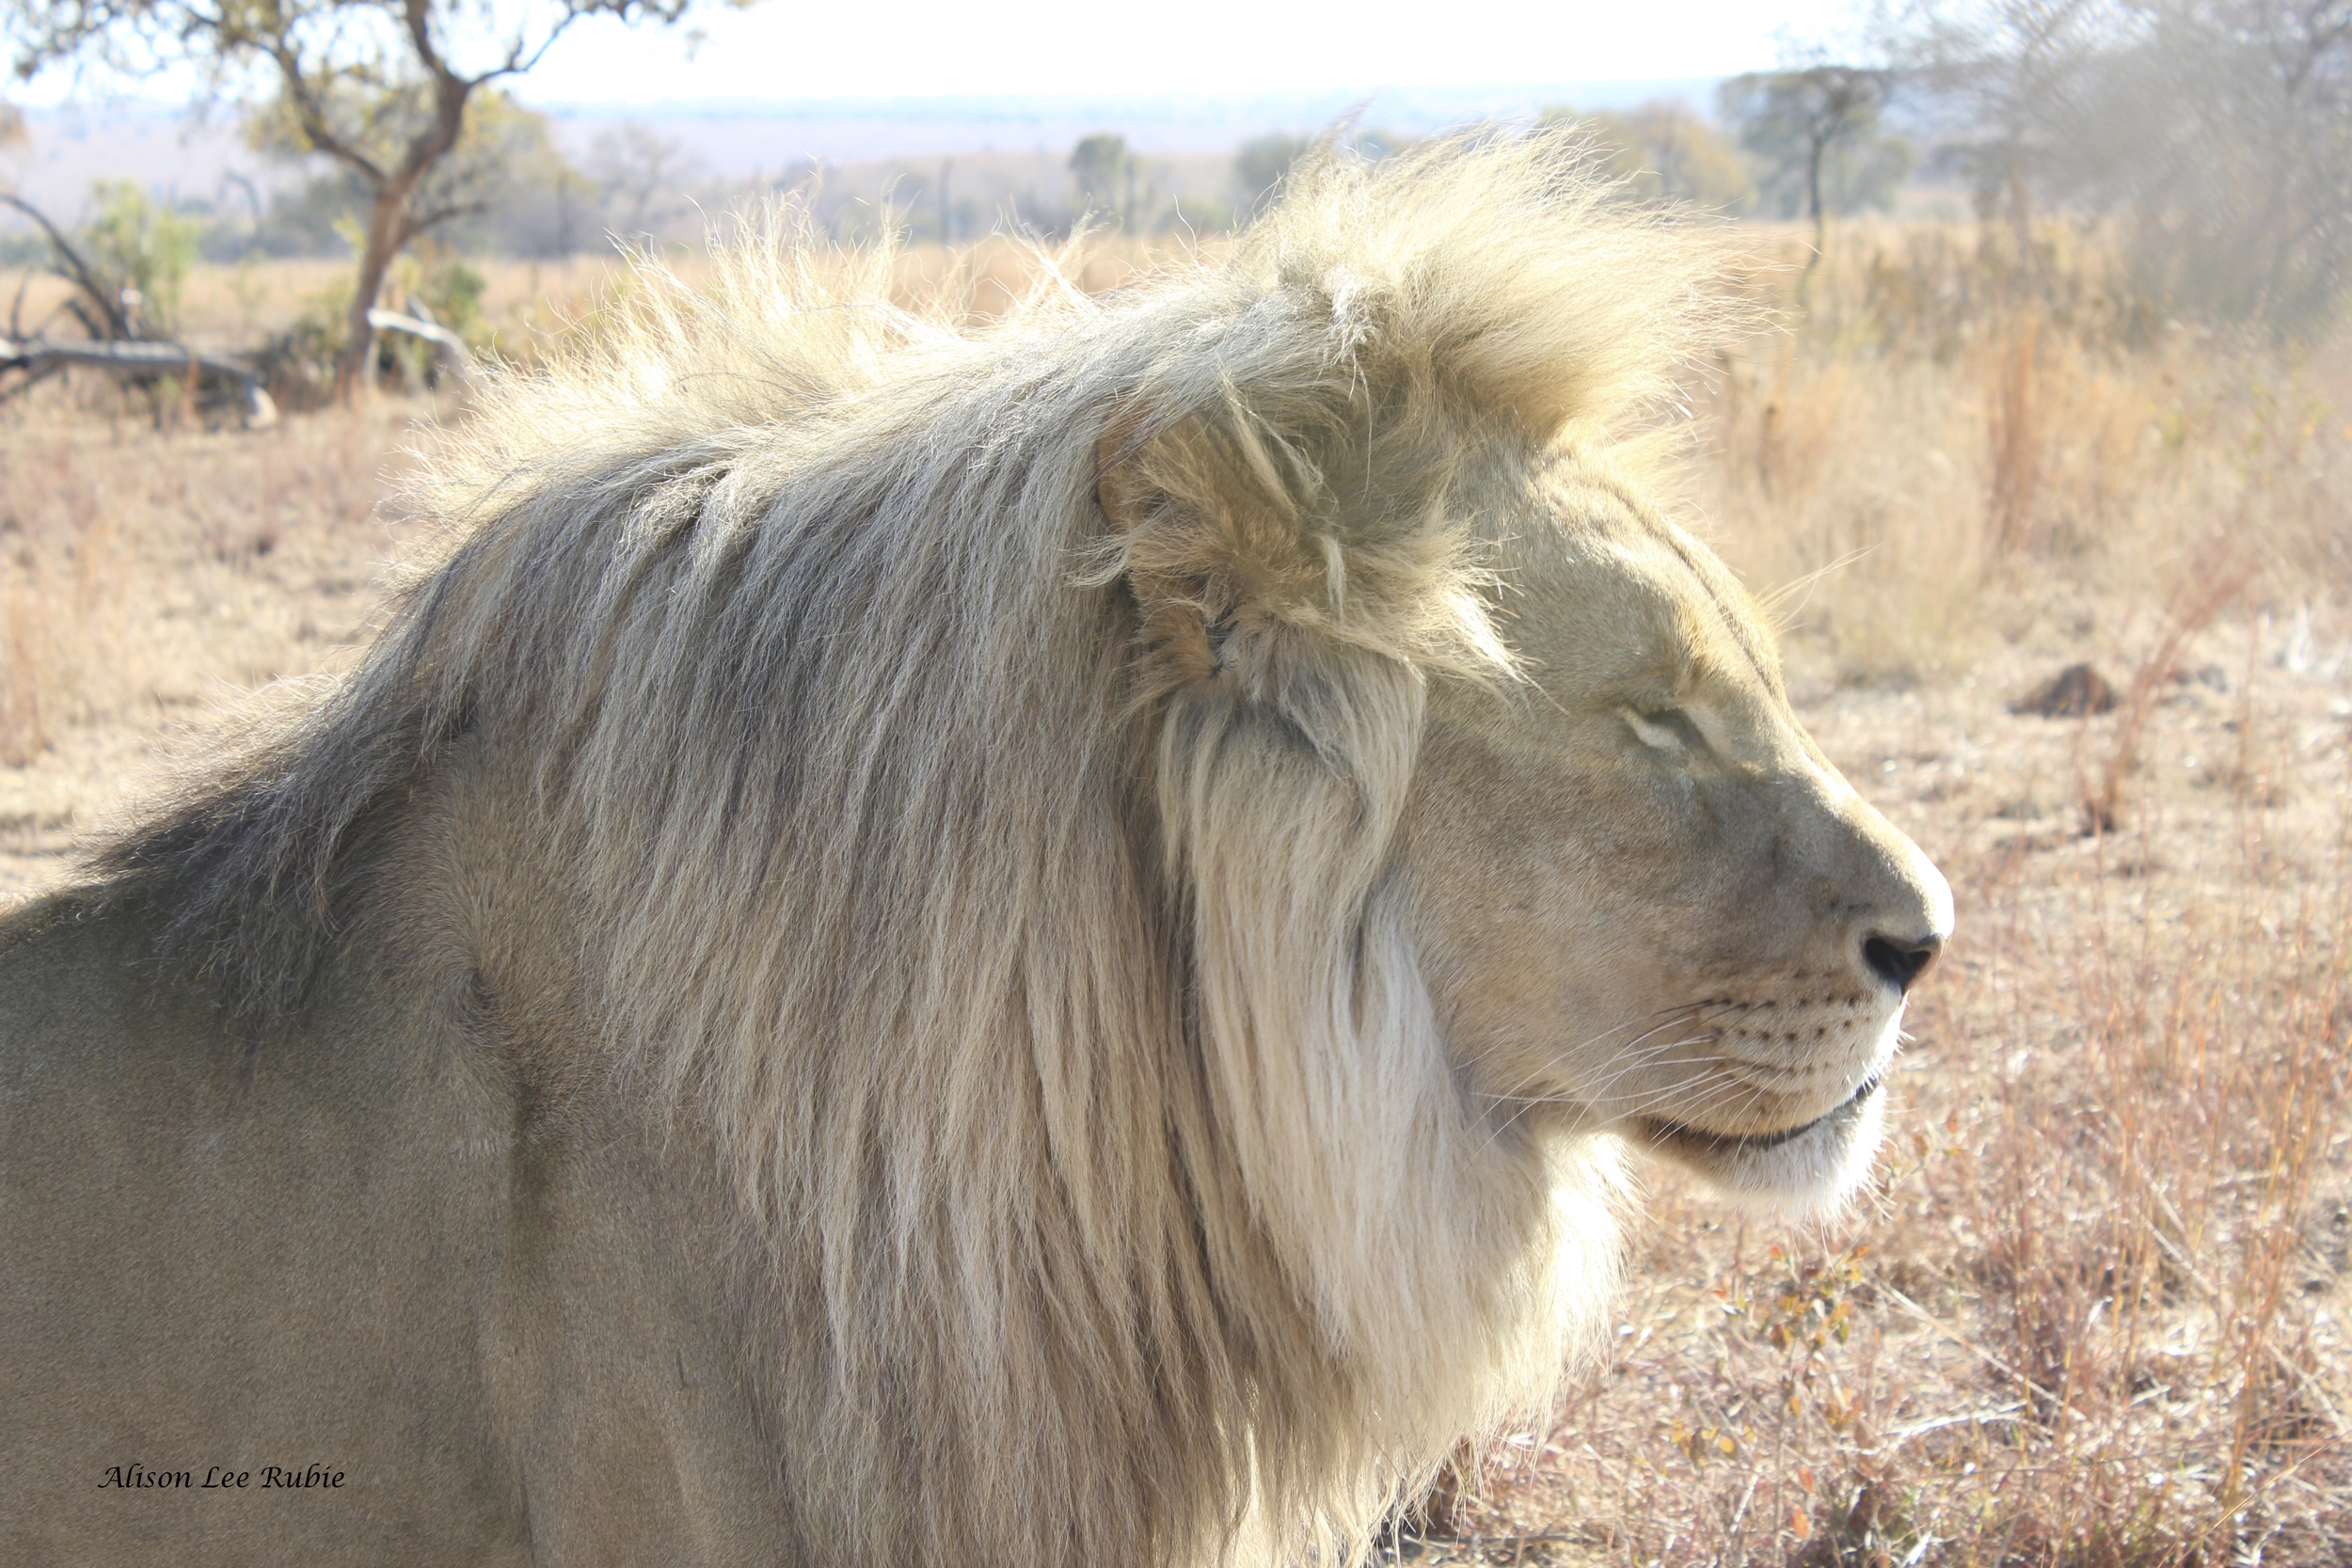 The Majestic - king of the Jungle